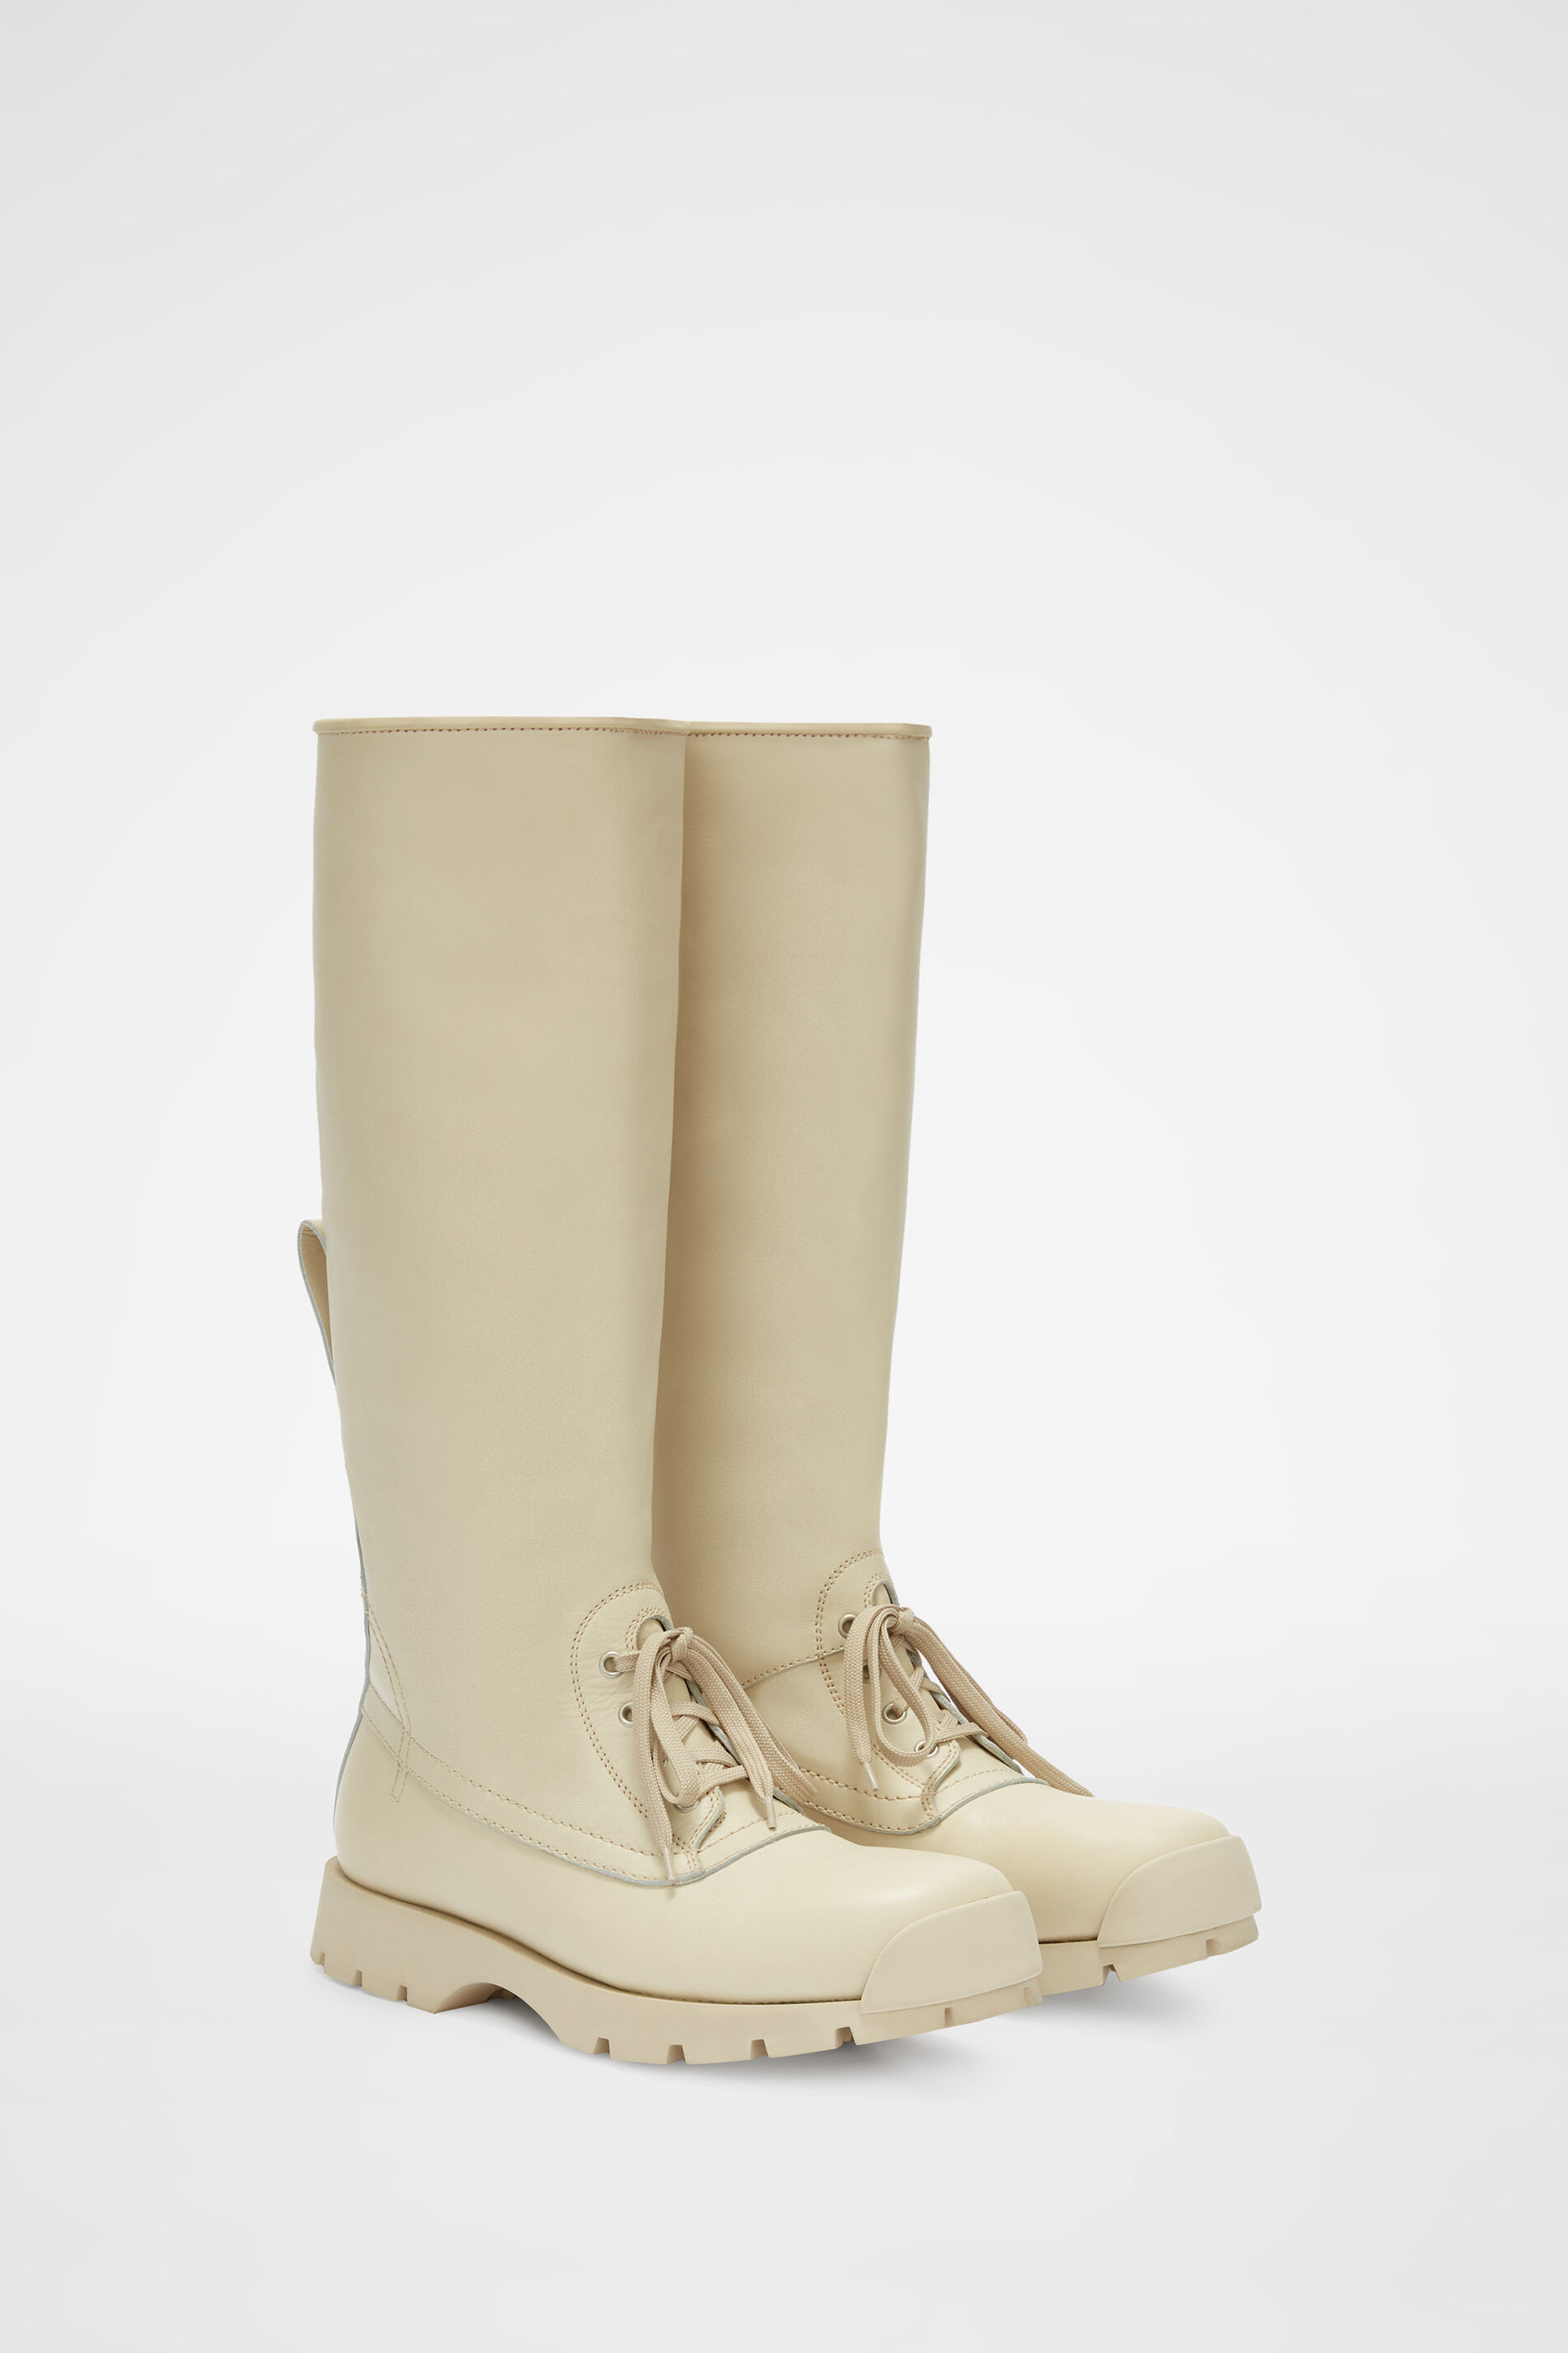 Knee-Boots, natural, large